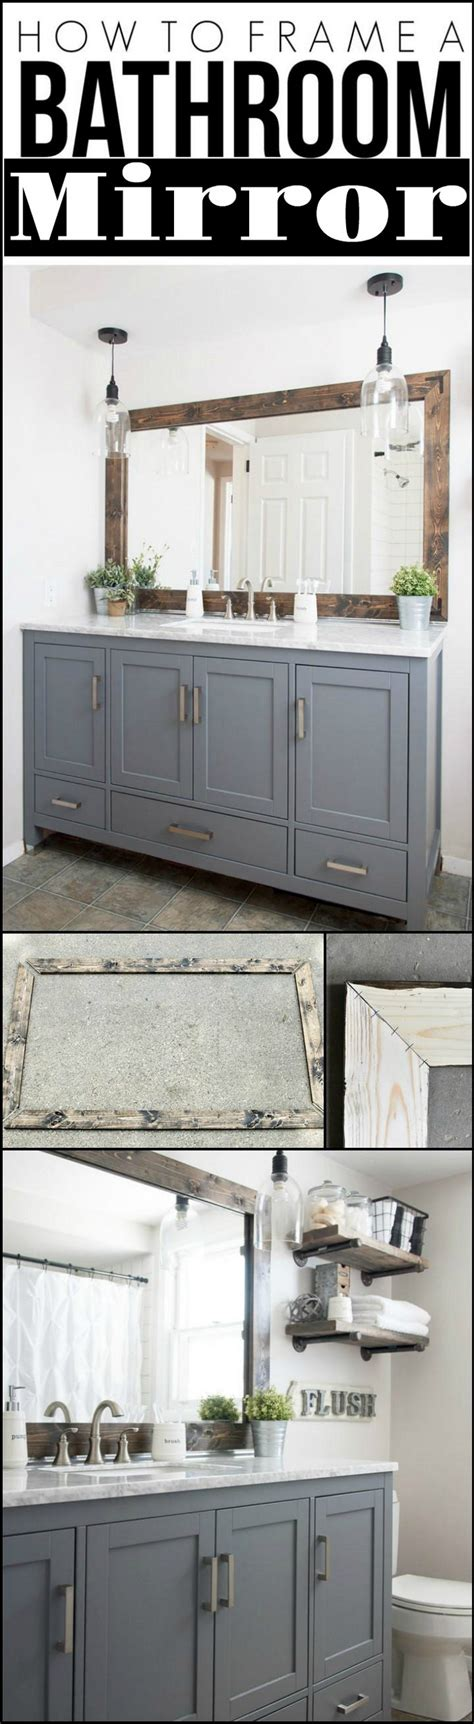 11 surprising and smart diy bathroom ideas on pinterest interesting and feasible diy bathroom projects best home